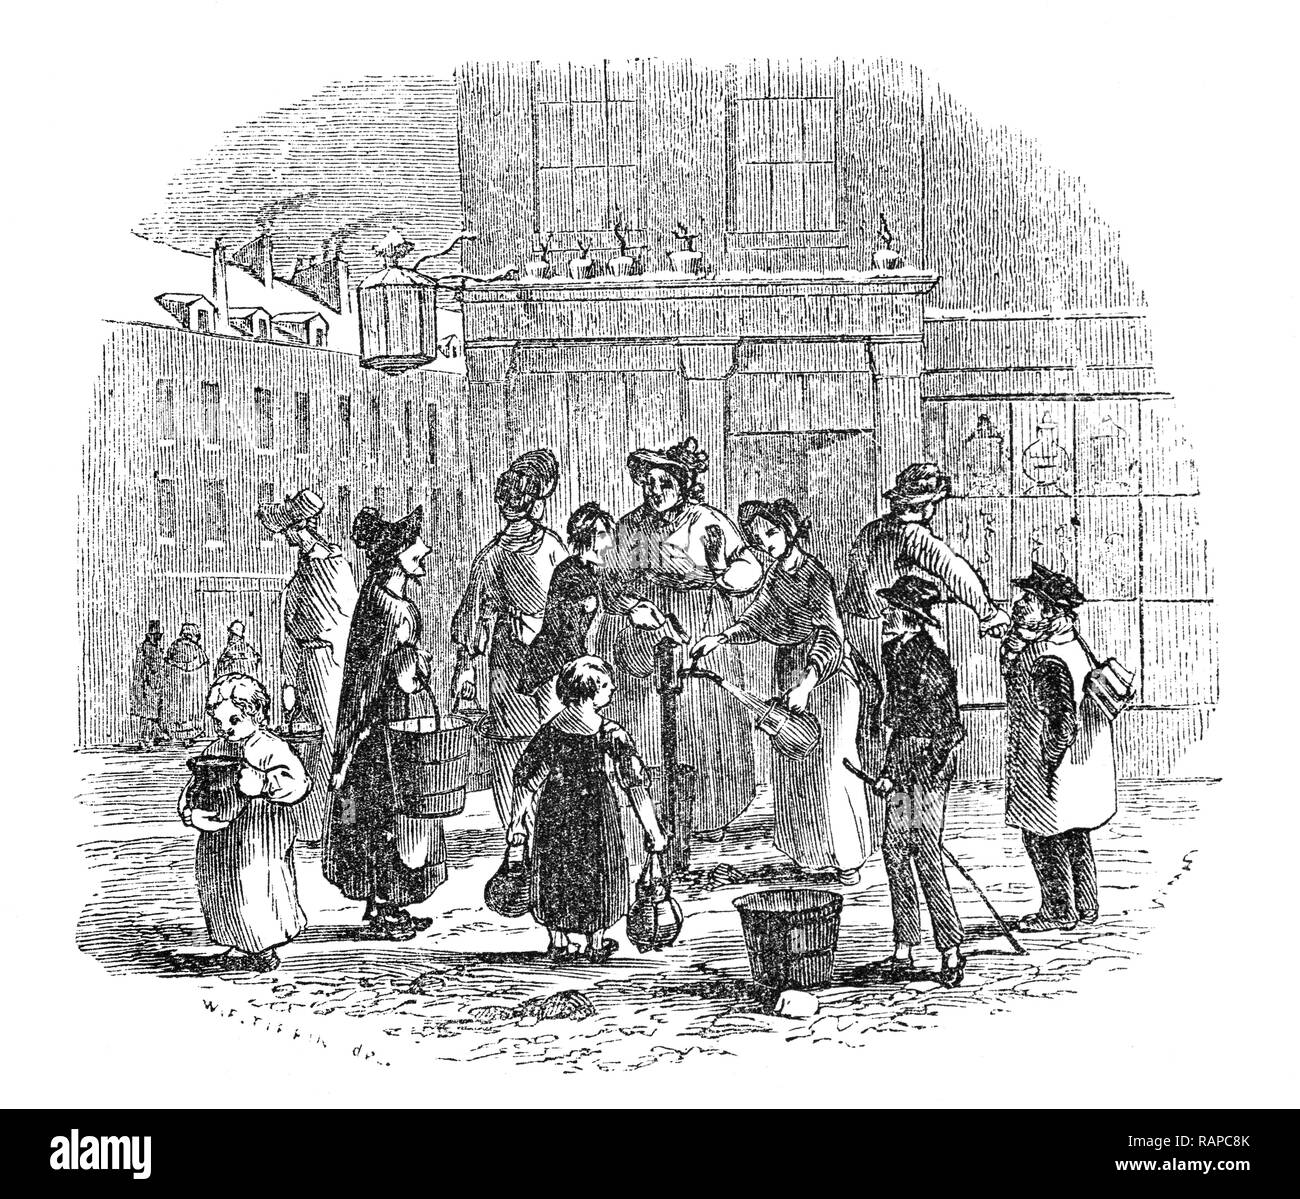 17th Century London and a 'plug in a frost', used when pipes and cisterns in homes were frozen, around which women gathered to replenish water supplies and a chat. - Stock Image